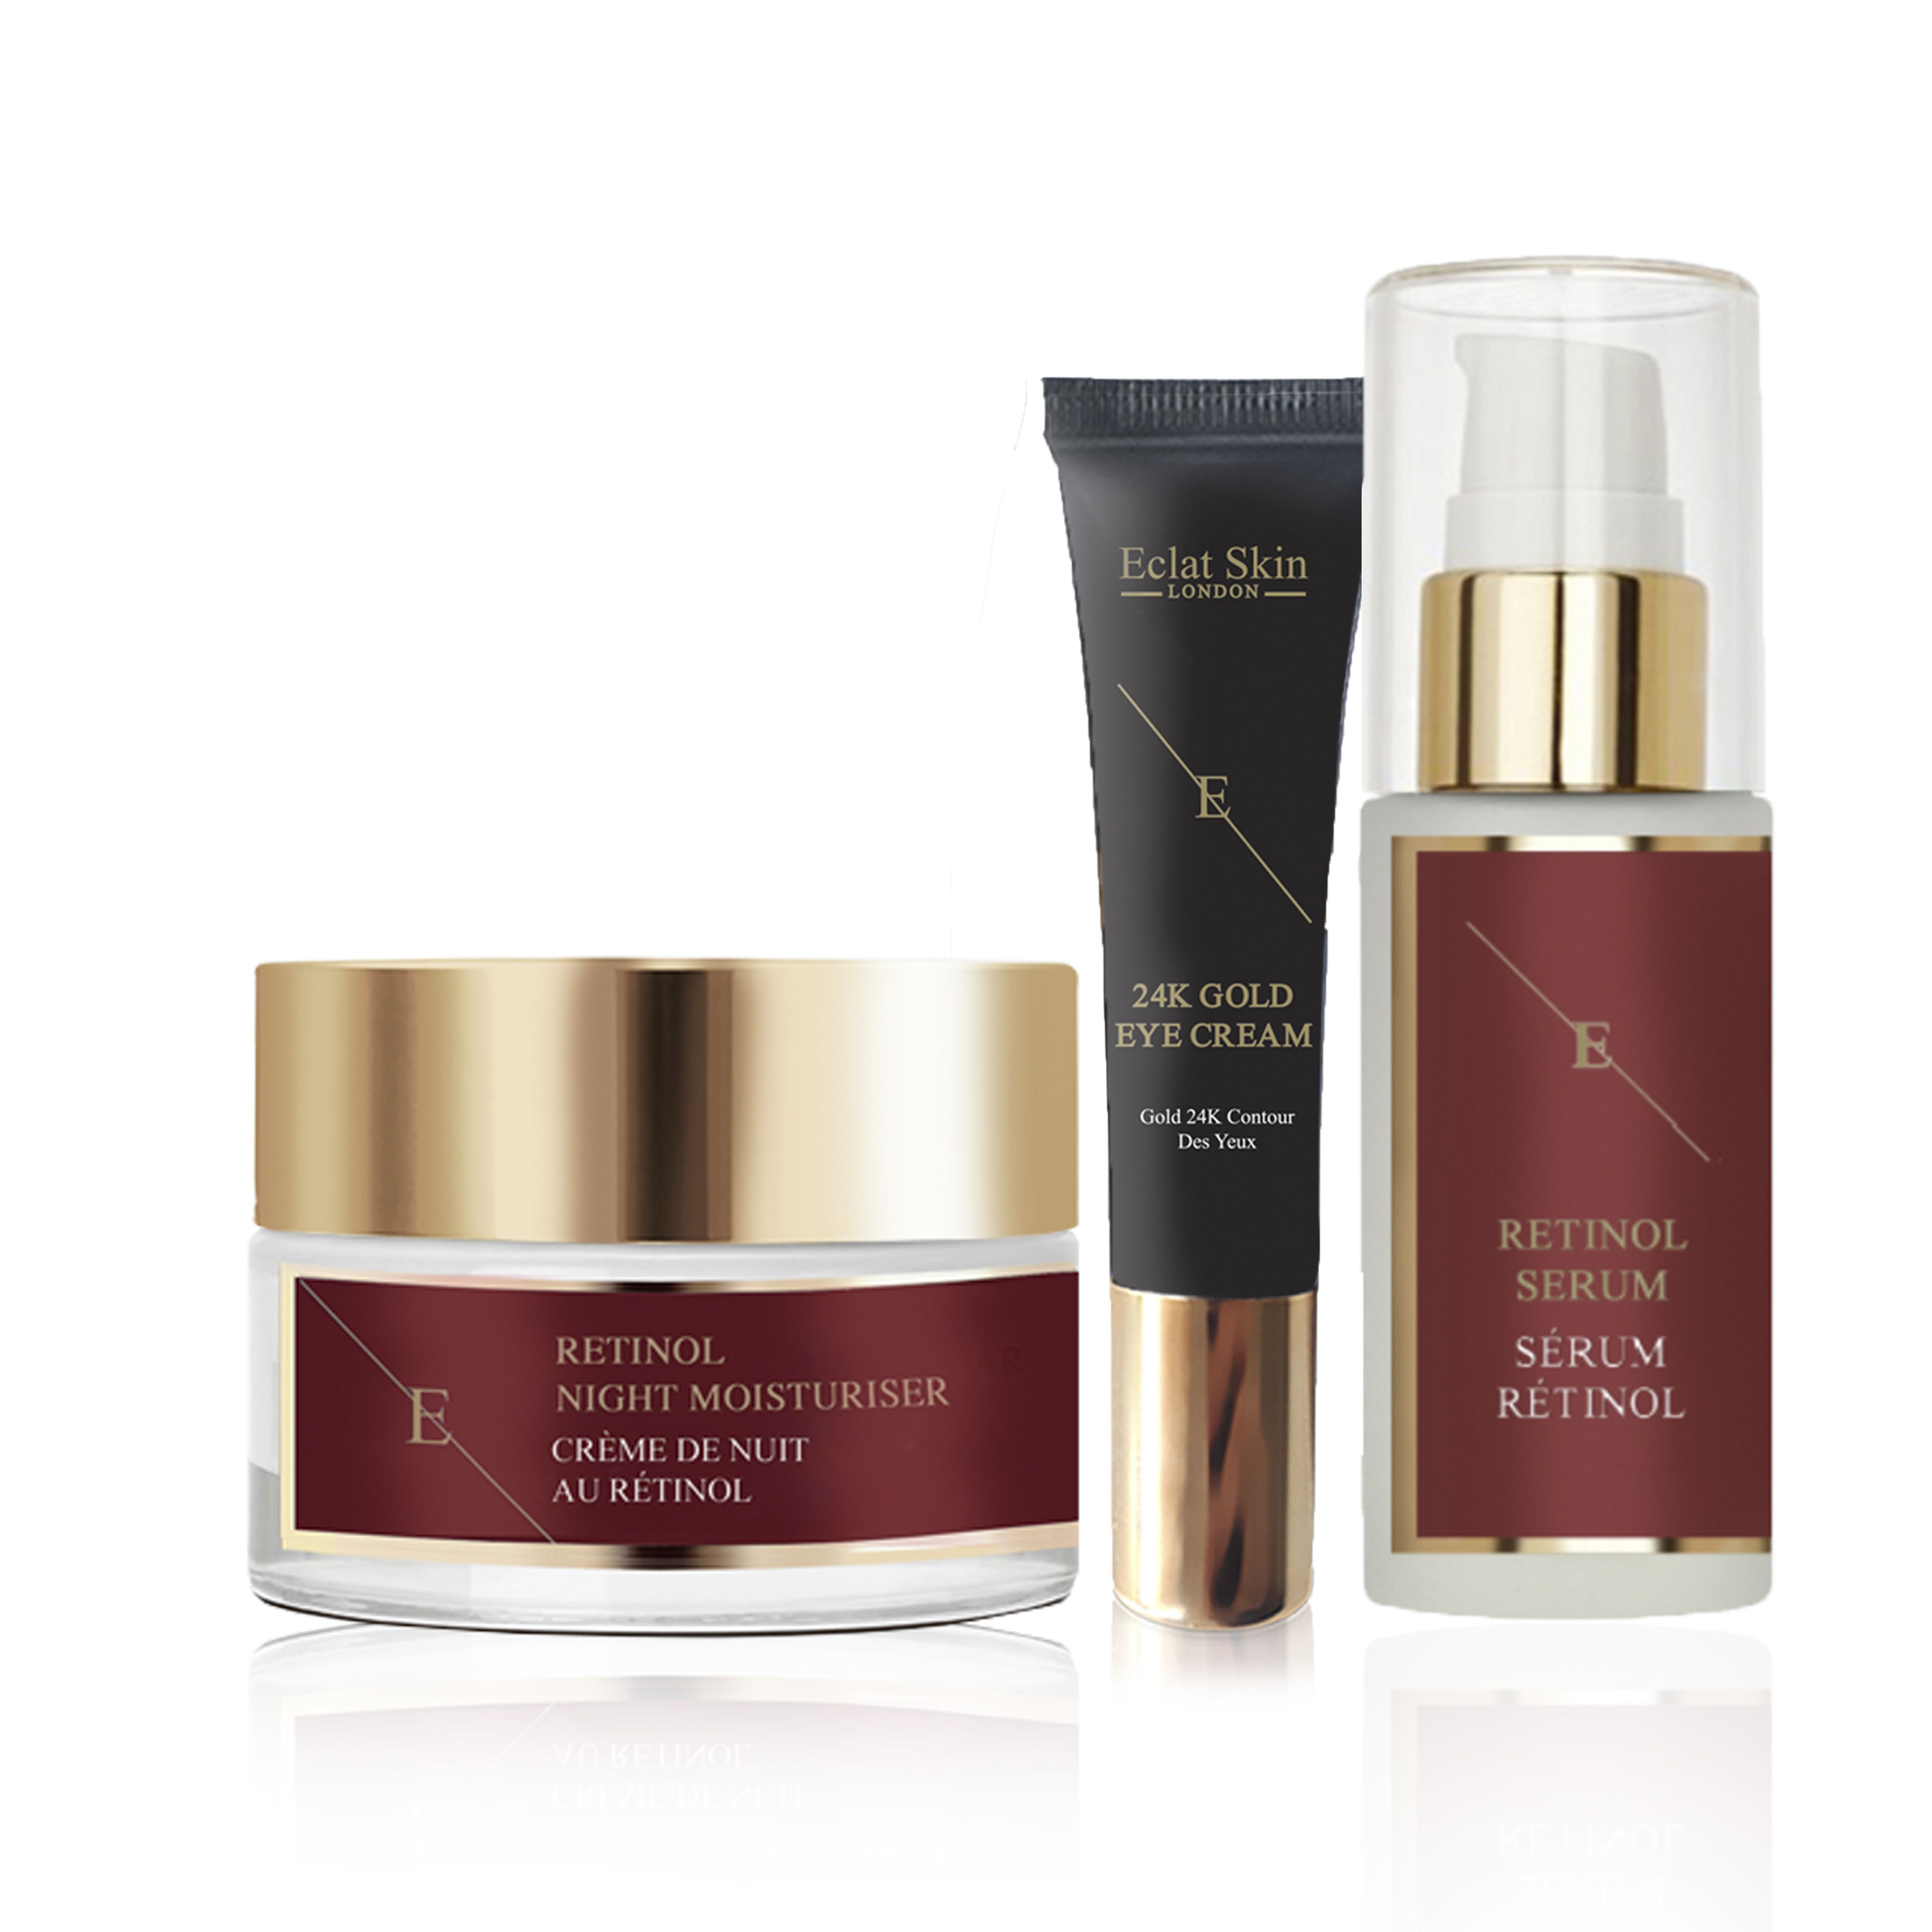 Pro Retinol + Caviar Serum 60ml Retinol + Caviar Moisturiser 50ml + Under Eye Cream 24K Gold - 15ml